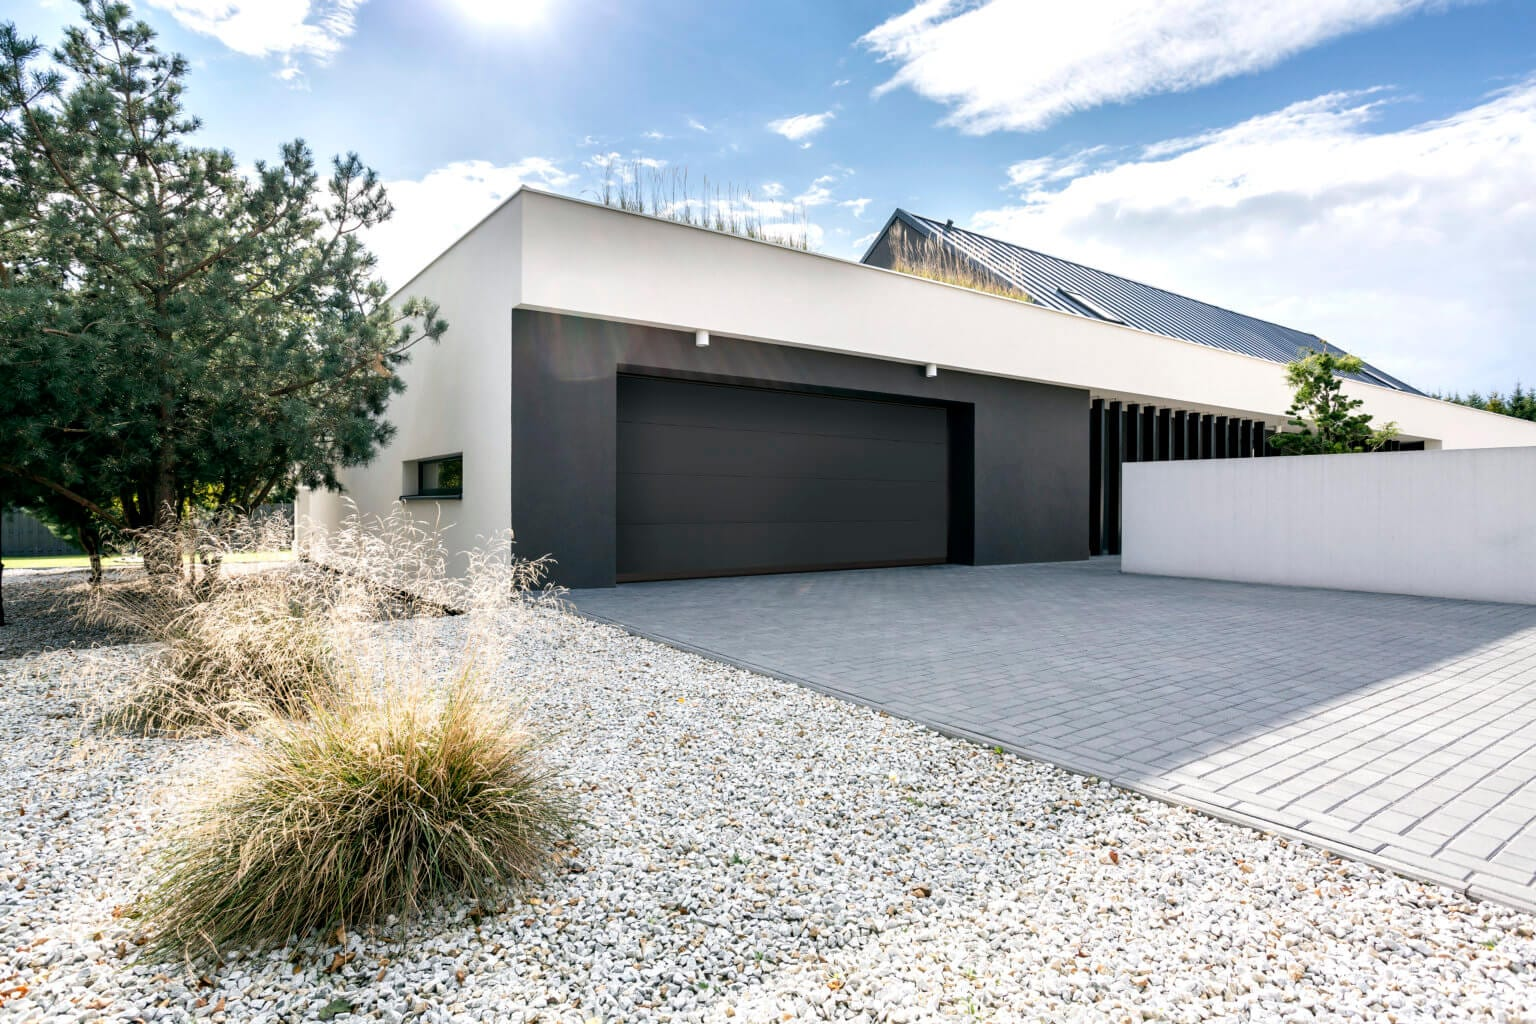 Modernly designed house with double garage